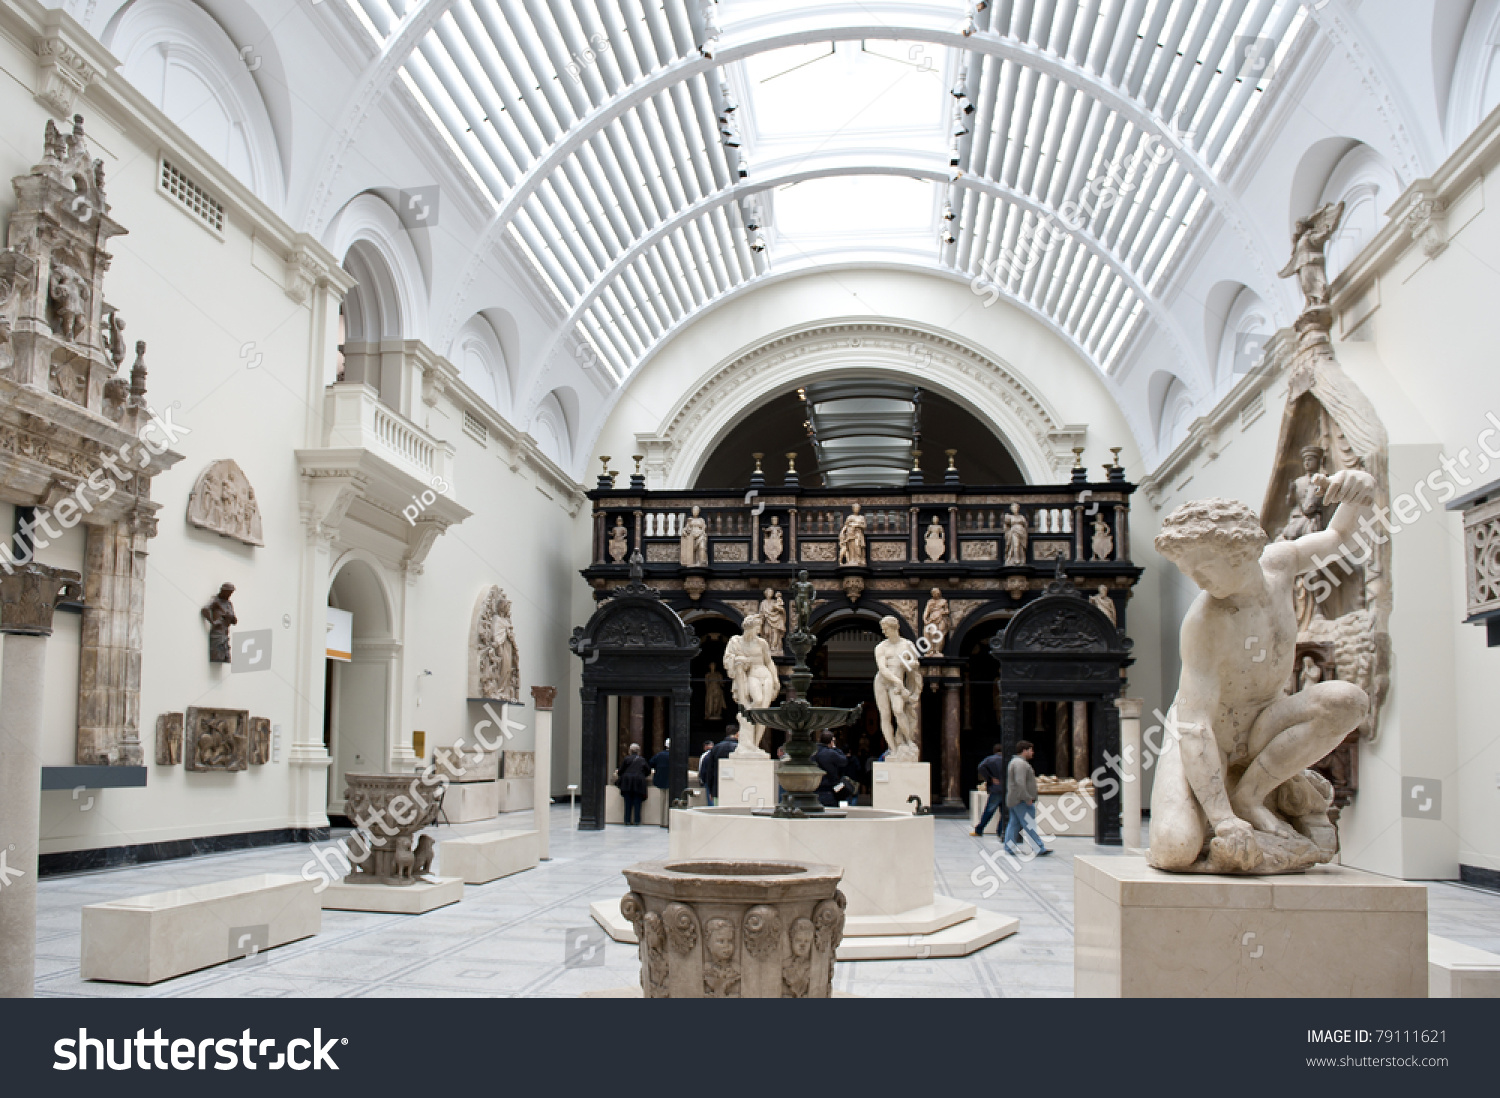 London united kingdom may 31 interior stock photo 79111621 for Victoria and albert museum london